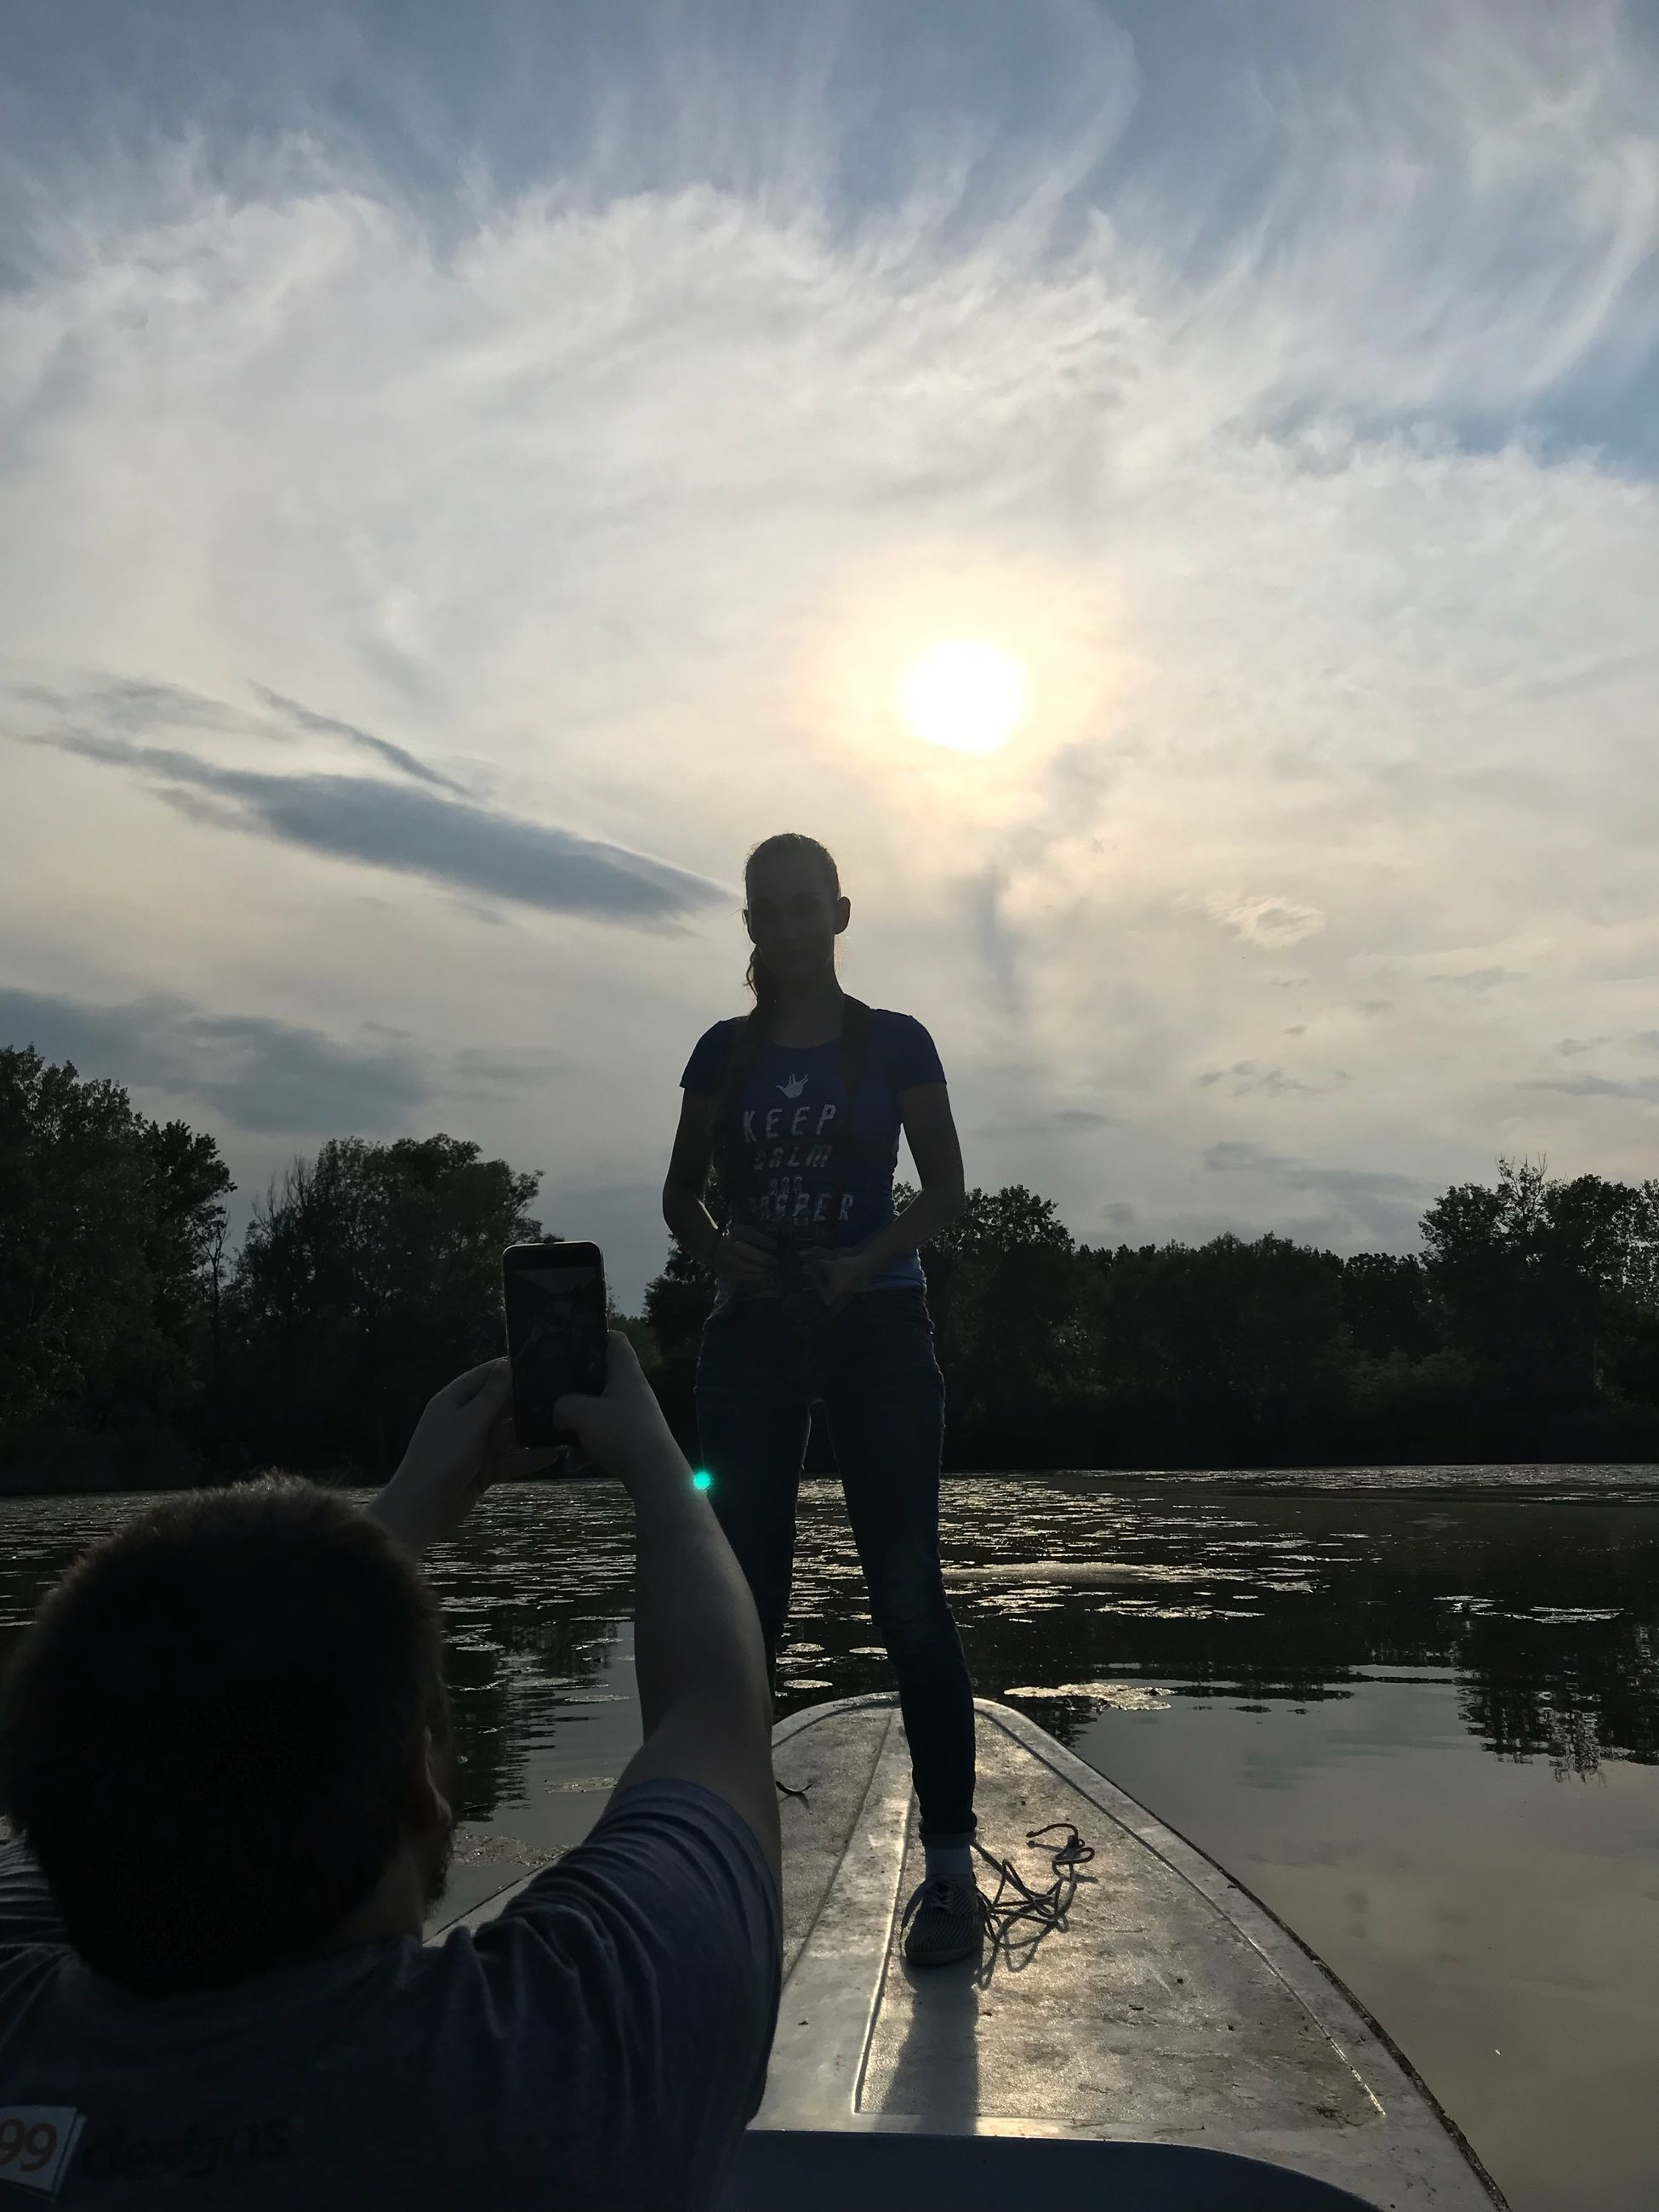 sky, water, men, real people, cloud - sky, rear view, sunset, lake, nature, lifestyles, two people, leisure activity, togetherness, tree, people, activity, child, adult, males, outdoors, positive emotion, son